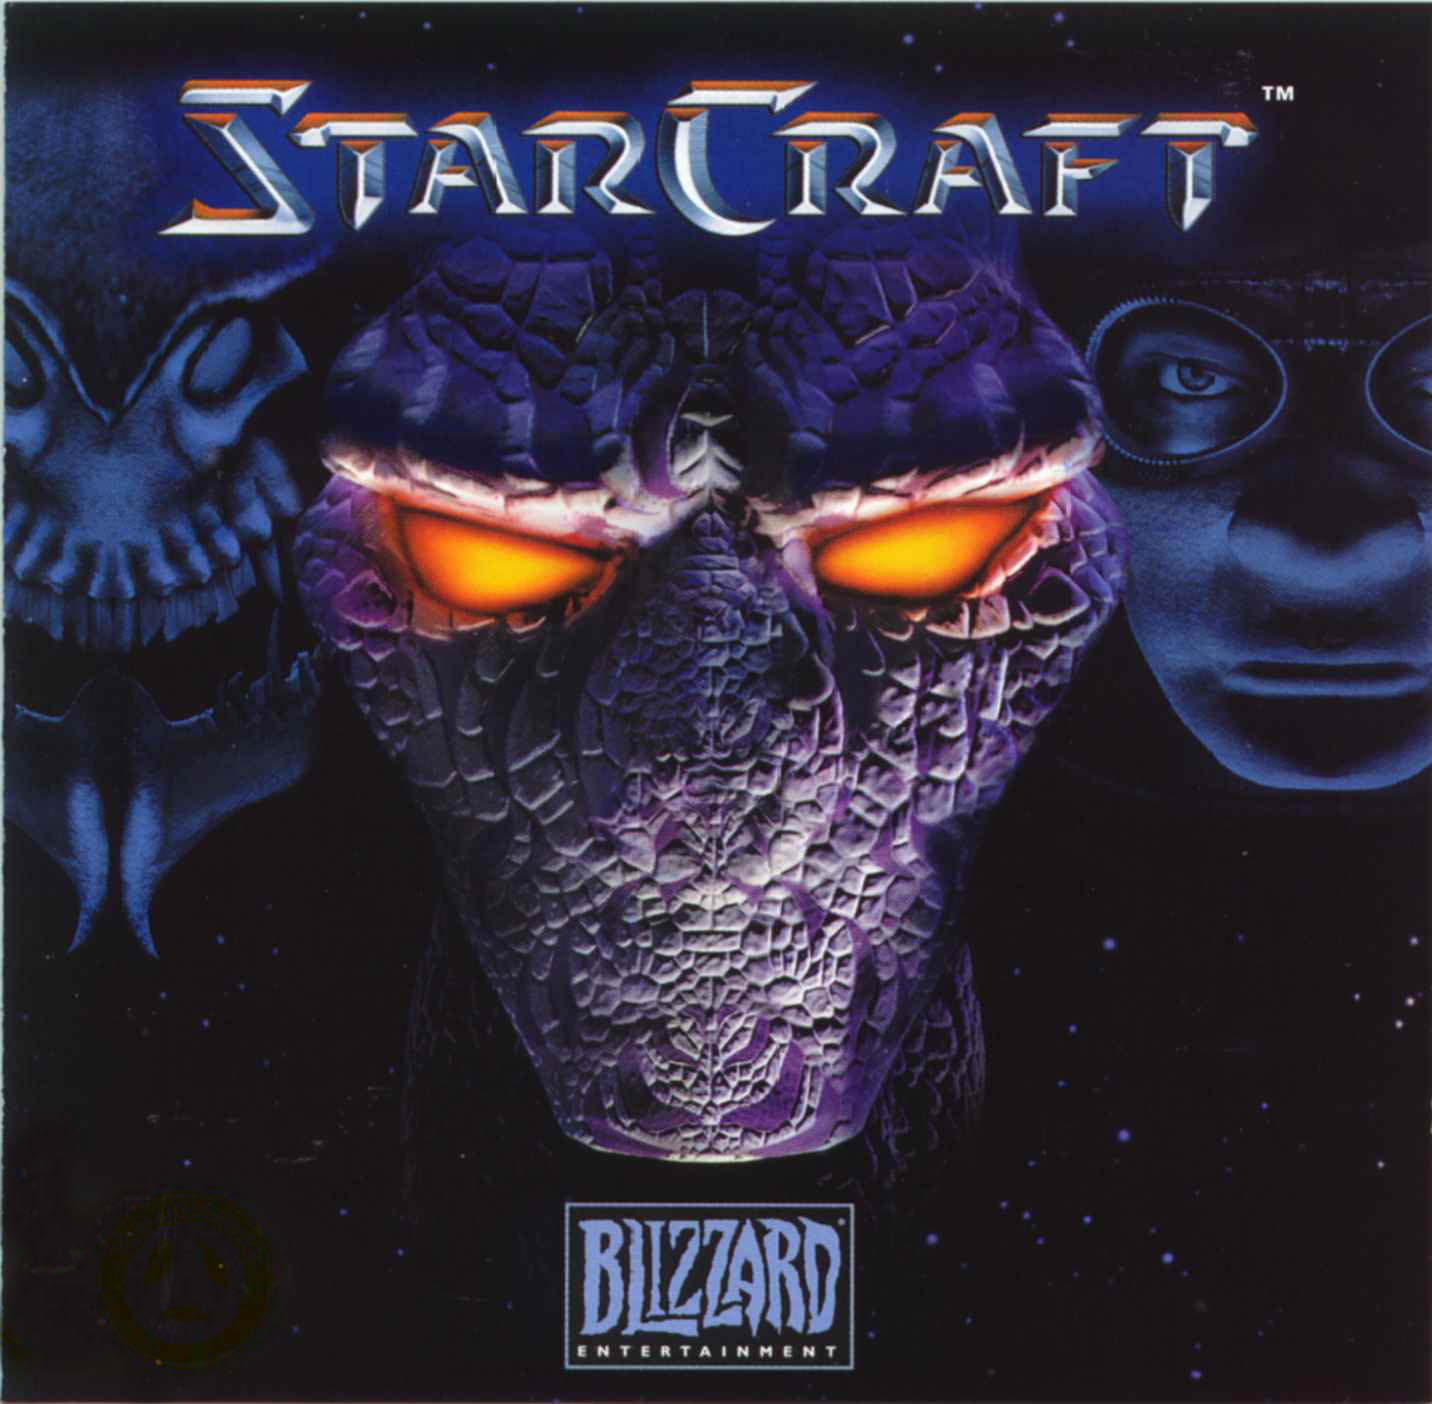 Play Starcraft on your Windows Vista, 7 or 8 PC